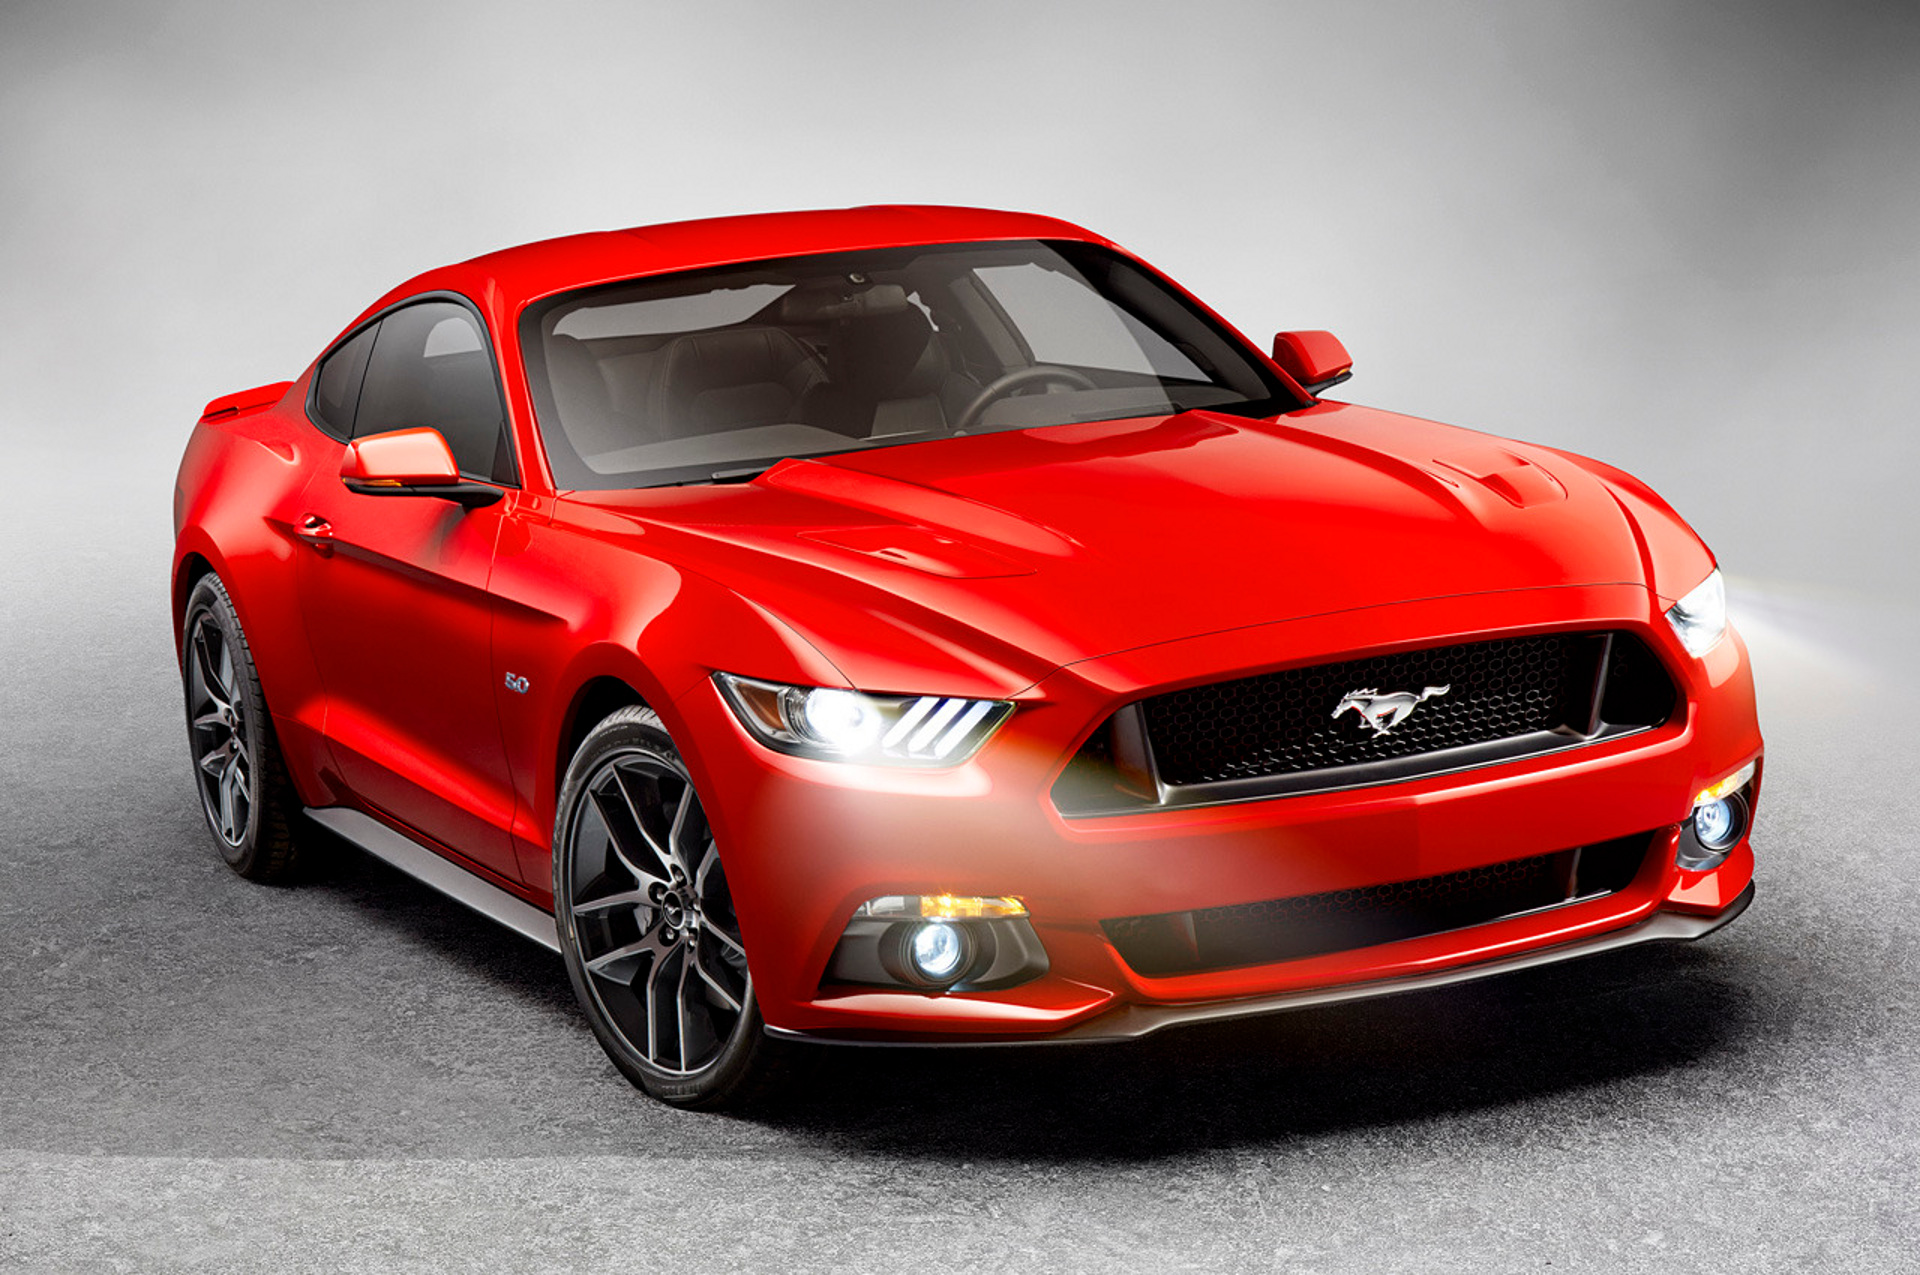 Ford Mustang hd wallpapers & pics